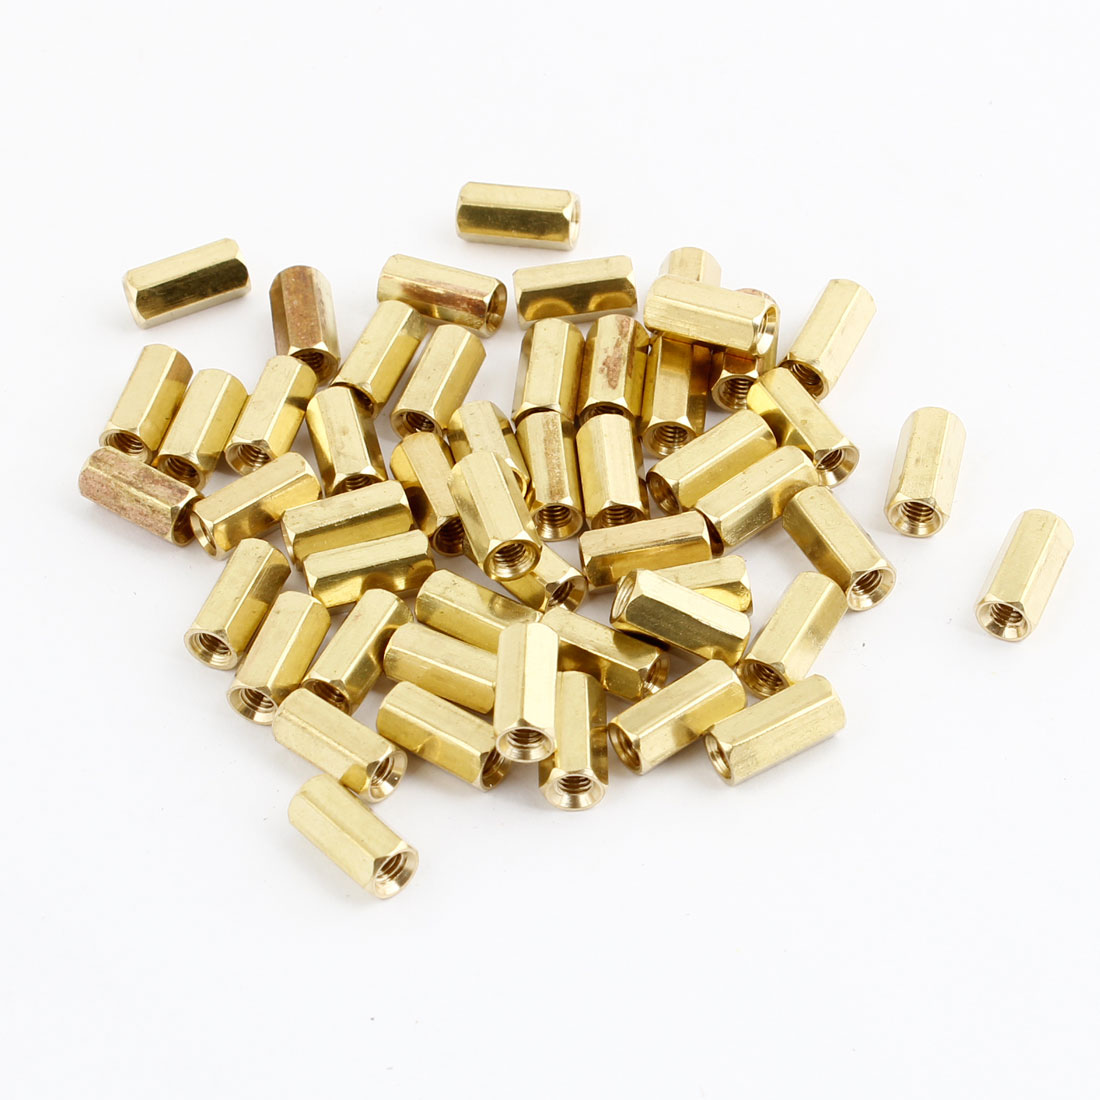 50Pcs M3 Female Thread Hex Standoff Hexagonal Spacer